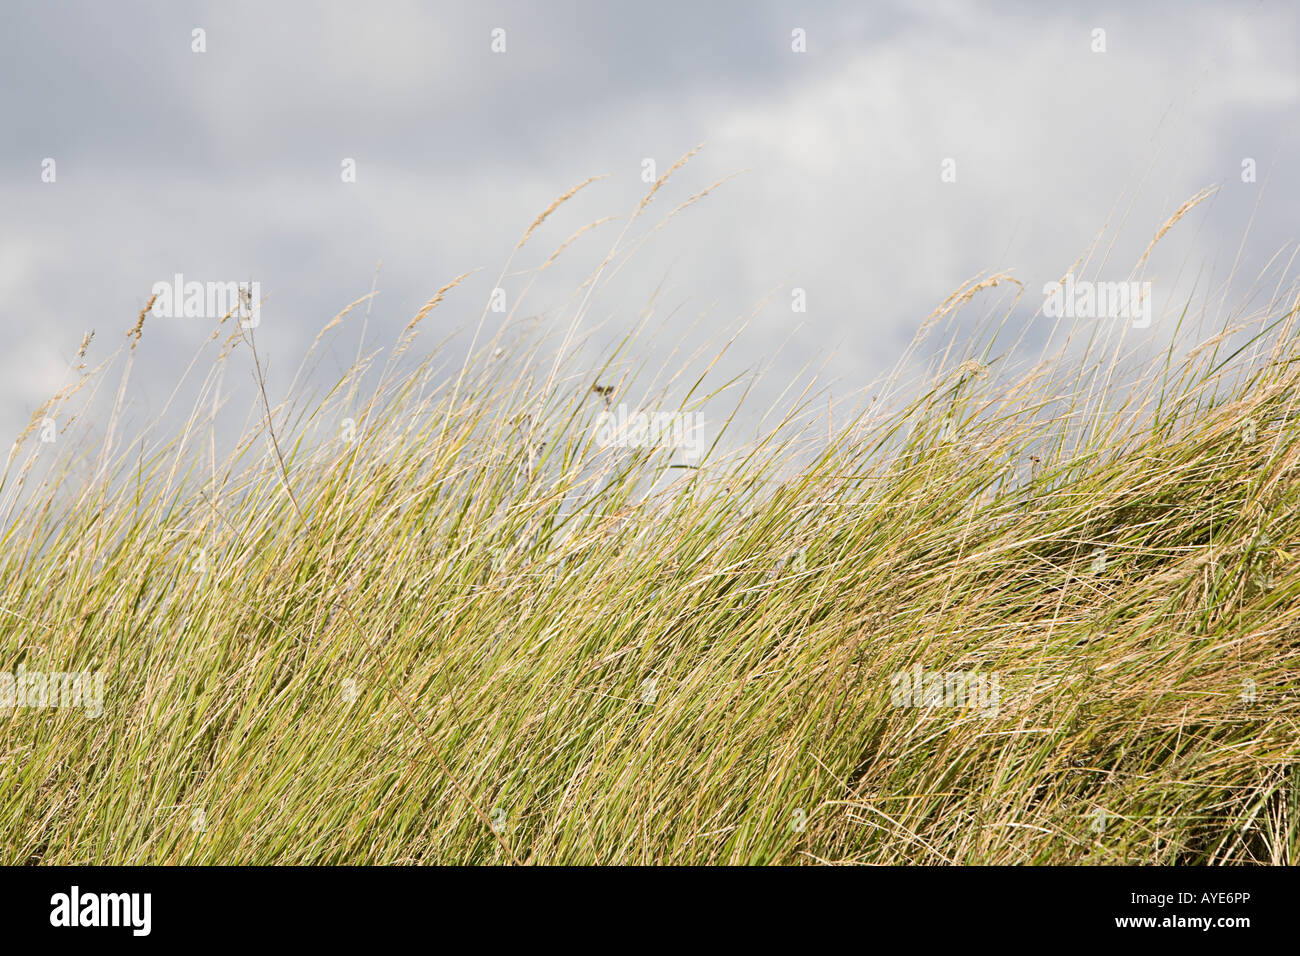 Clouds over marram grass - Stock Image